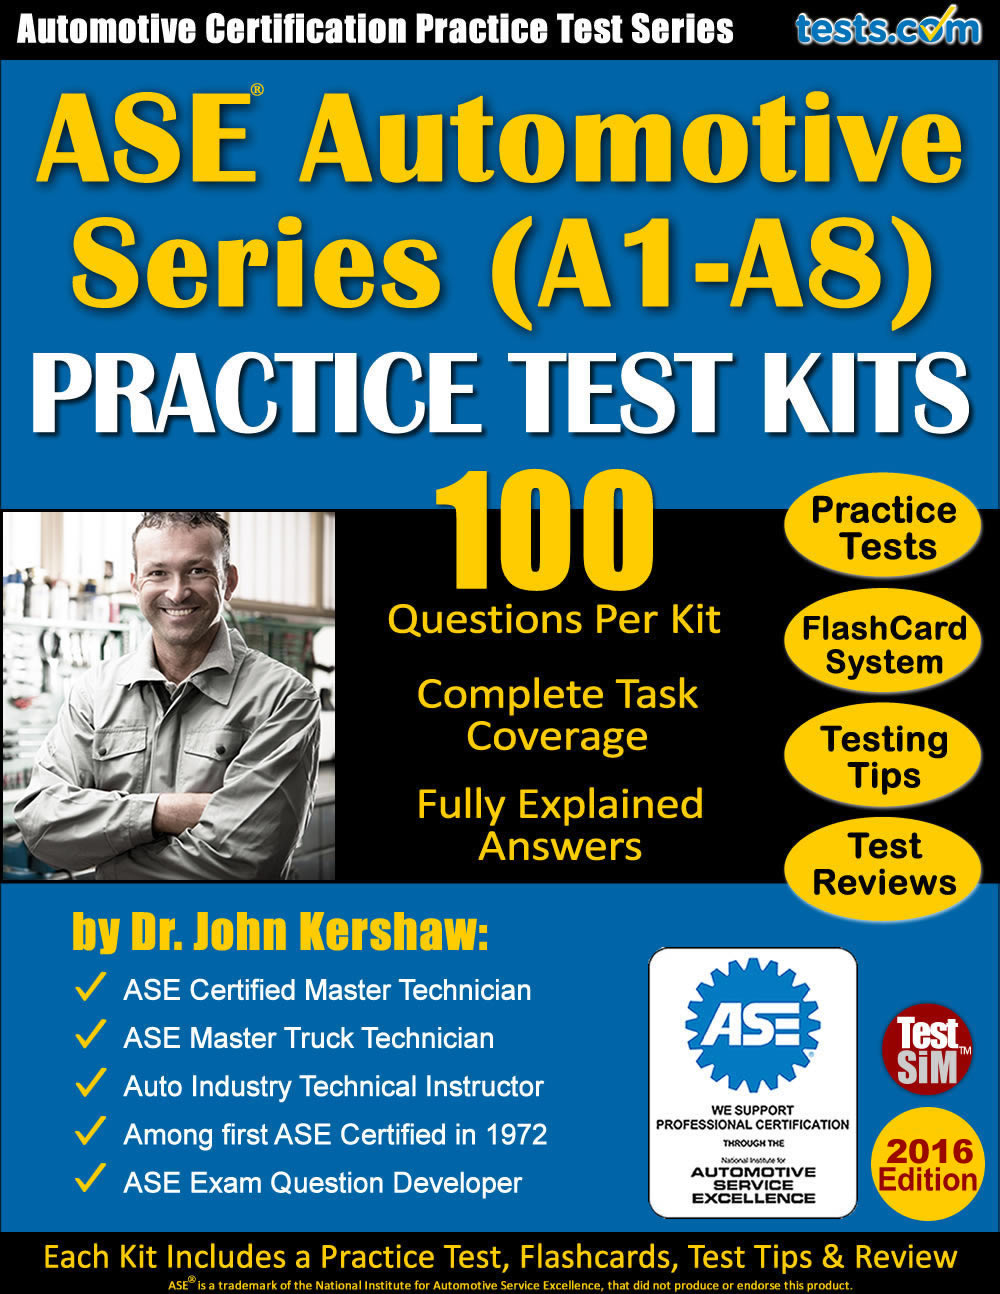 Ase Automotive Certification Practice Test